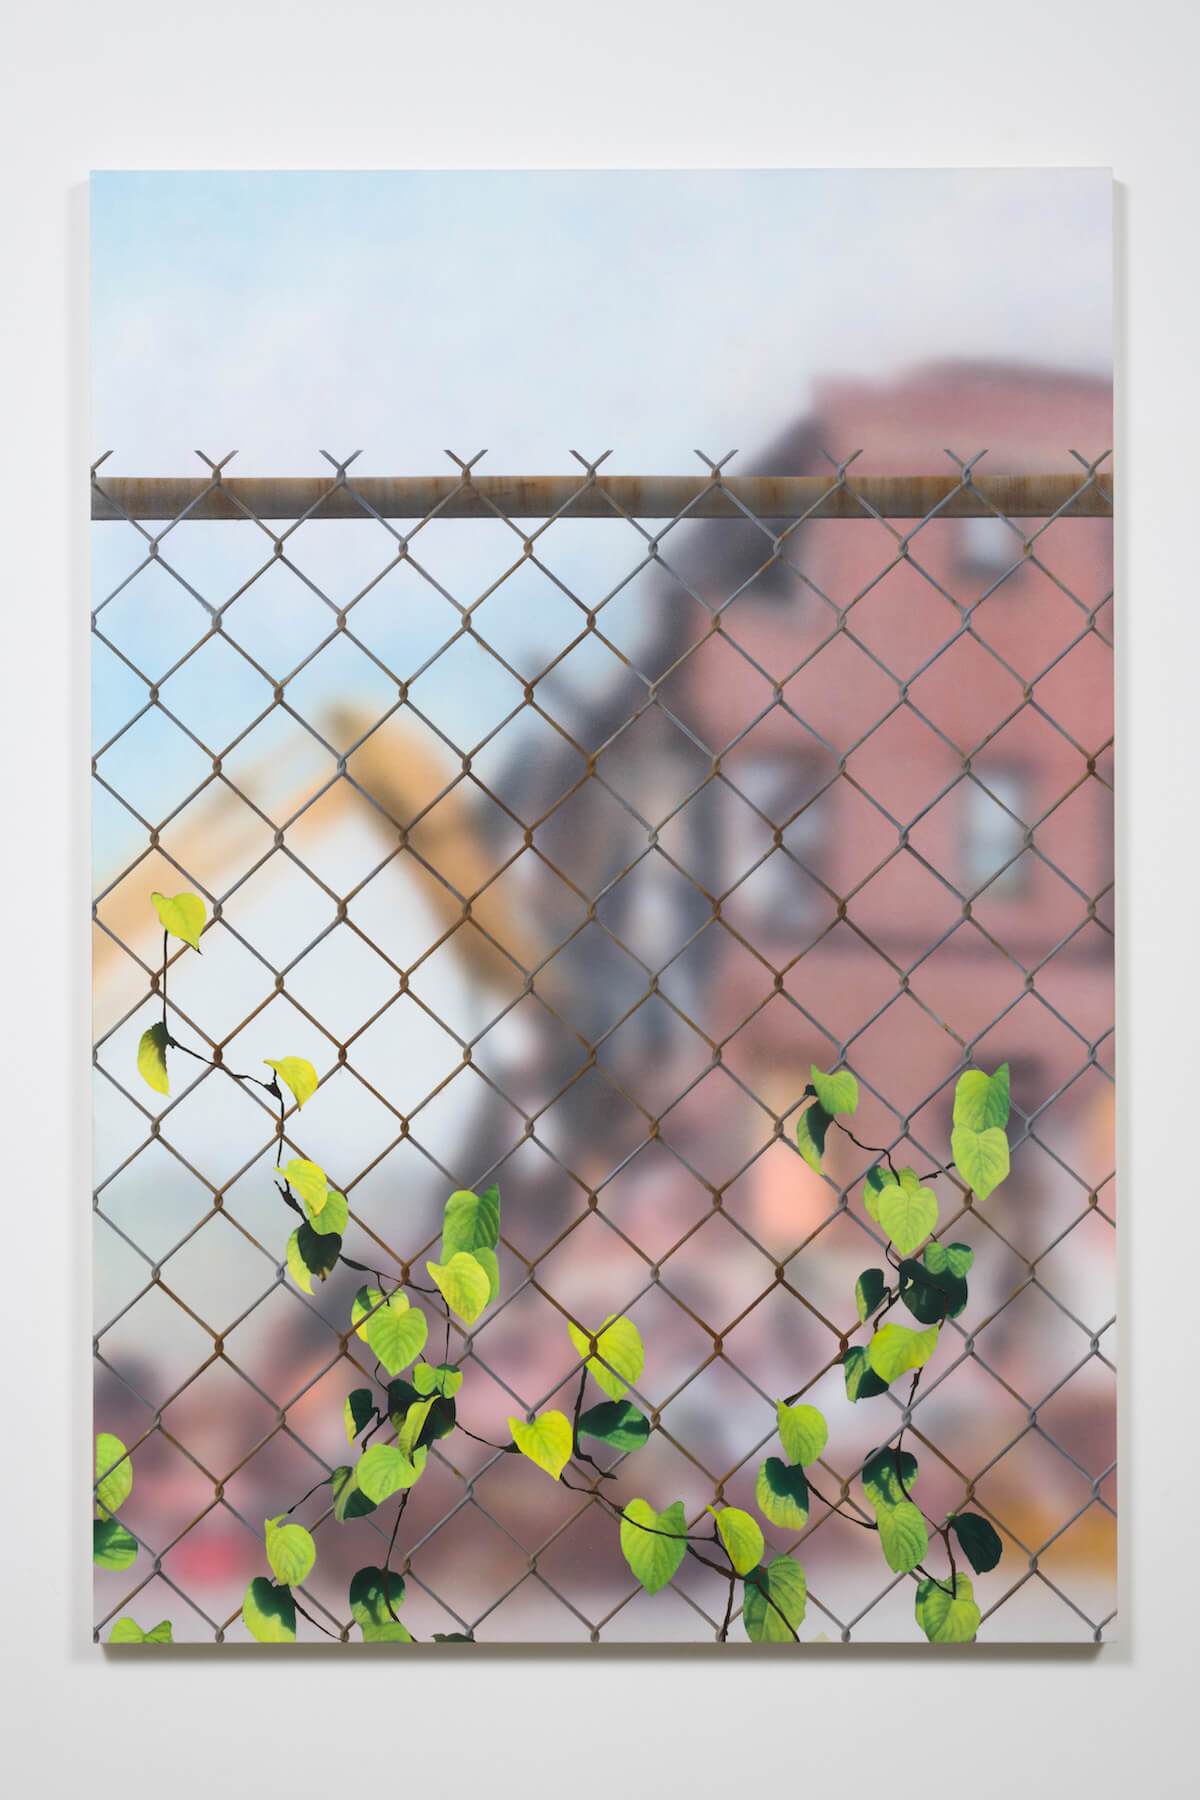 Gomez, Building in Deconstruction with Chain Link, 2017 (SG 17.027) A